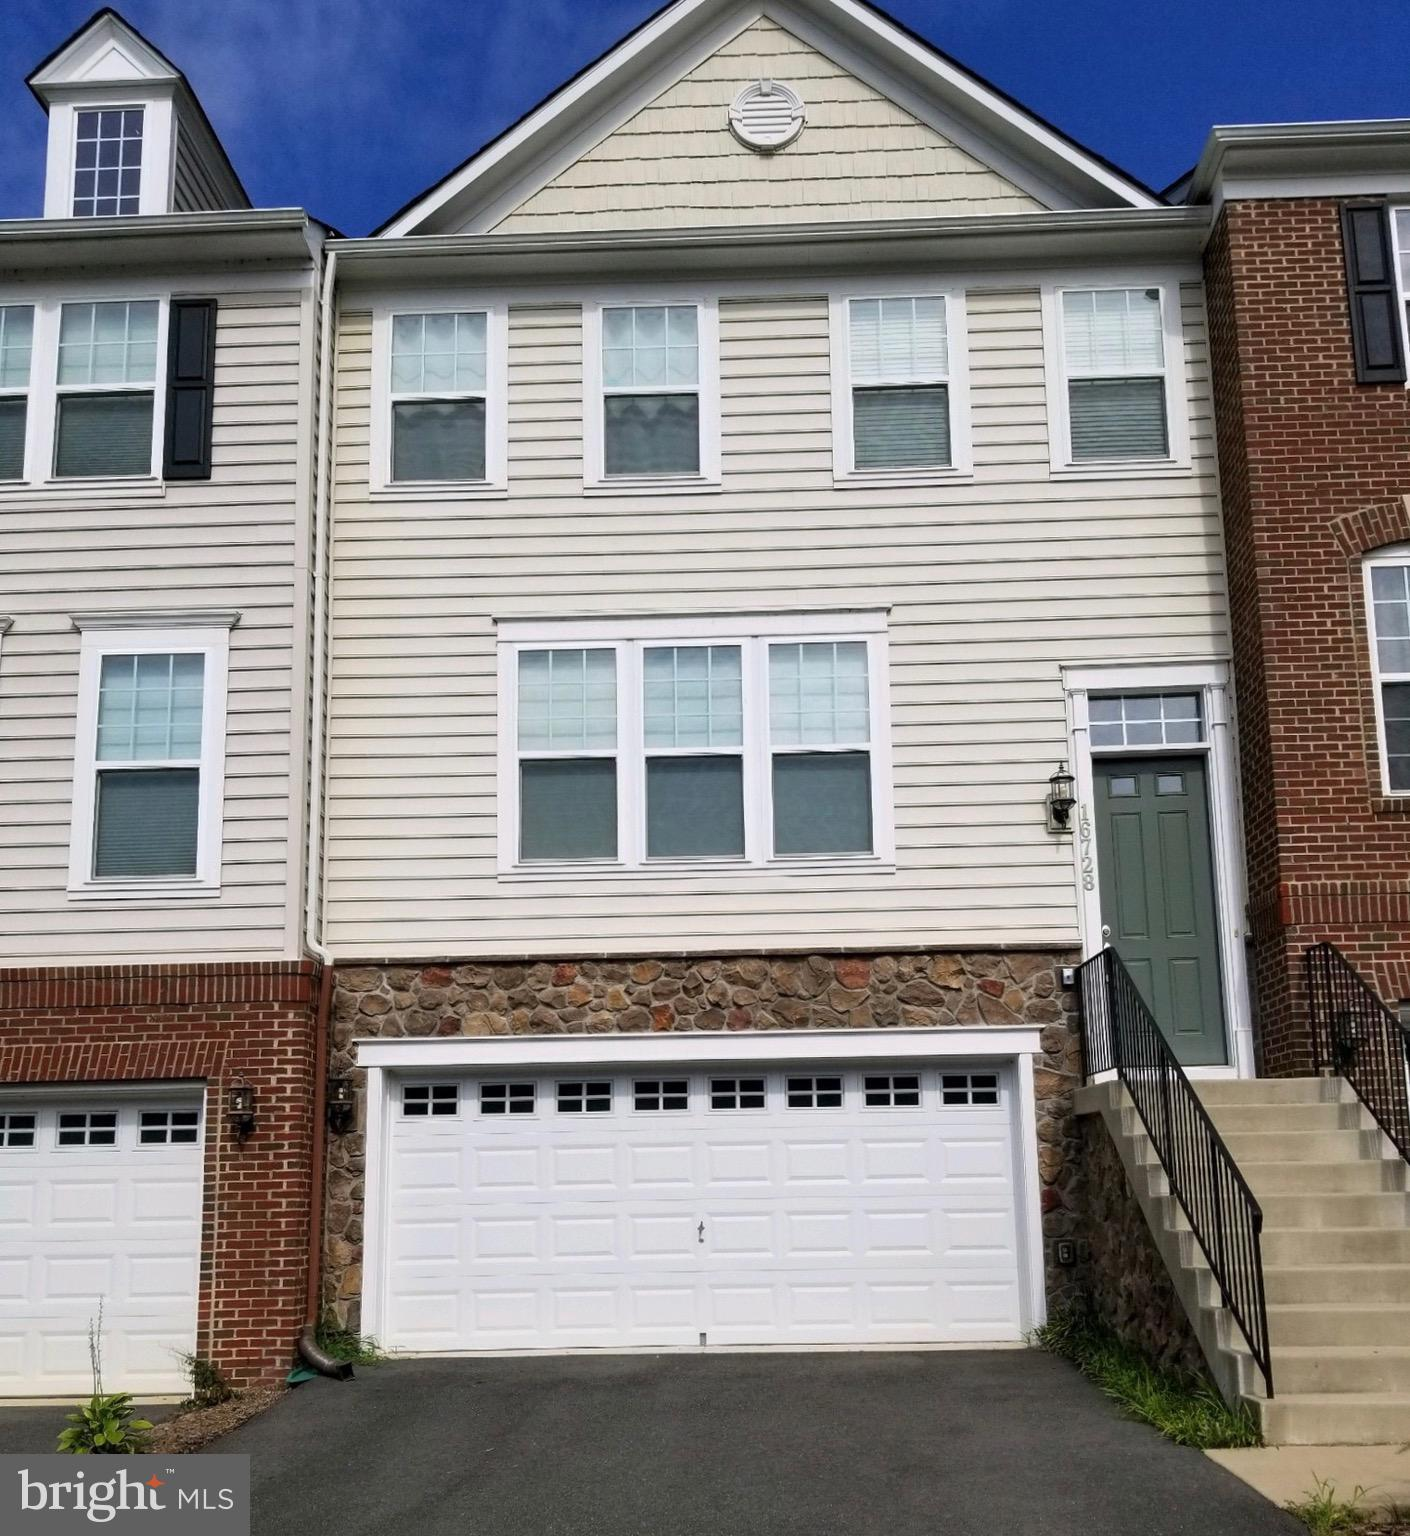 Gorgeous Townhouse in the desirable Powell's Landing community with tons of upgrades!. 3 Bedrooms, 3 Full & 1 Half Baths, Huge Kitchen with kitchen Island, Granite Counter-Tops, 2 Car Garage and much more. Close to Quantico and Fort Belvoir. Walking trail to Leesylvania State Park. Seller willing to consider lease-purchases.